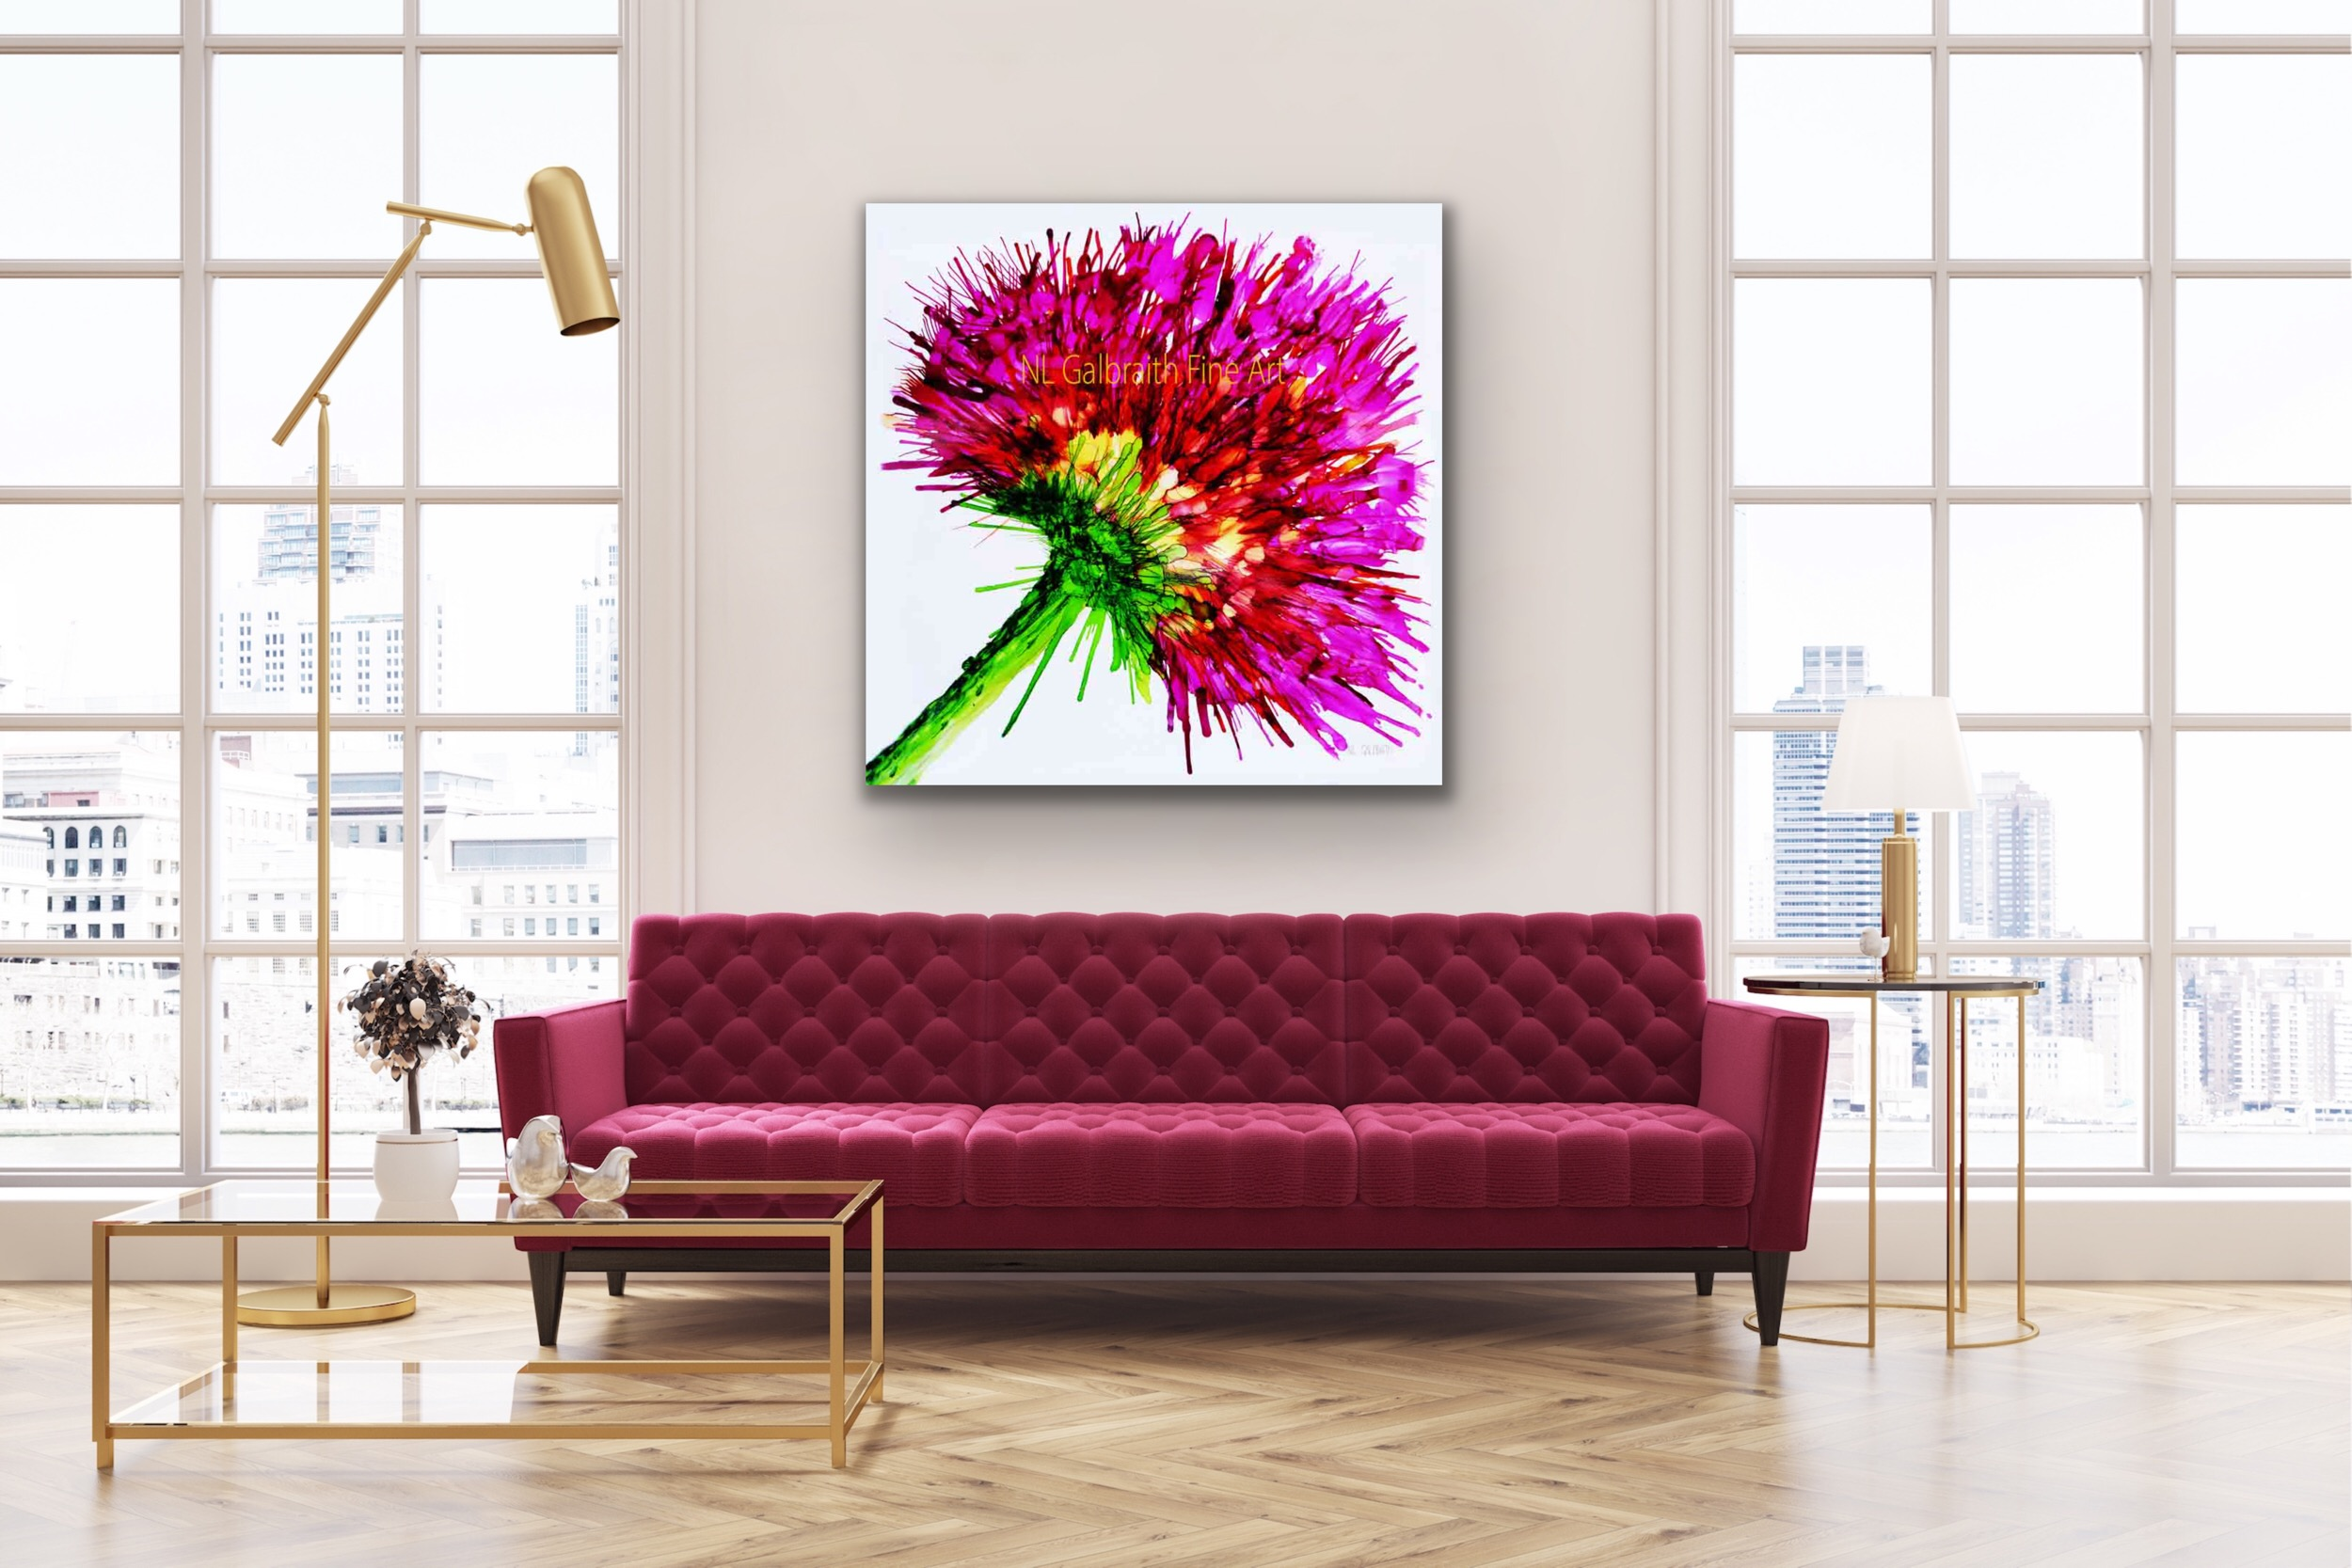 Graphic of a Pink Flower Over a Plum Colored Sofa in a Loft